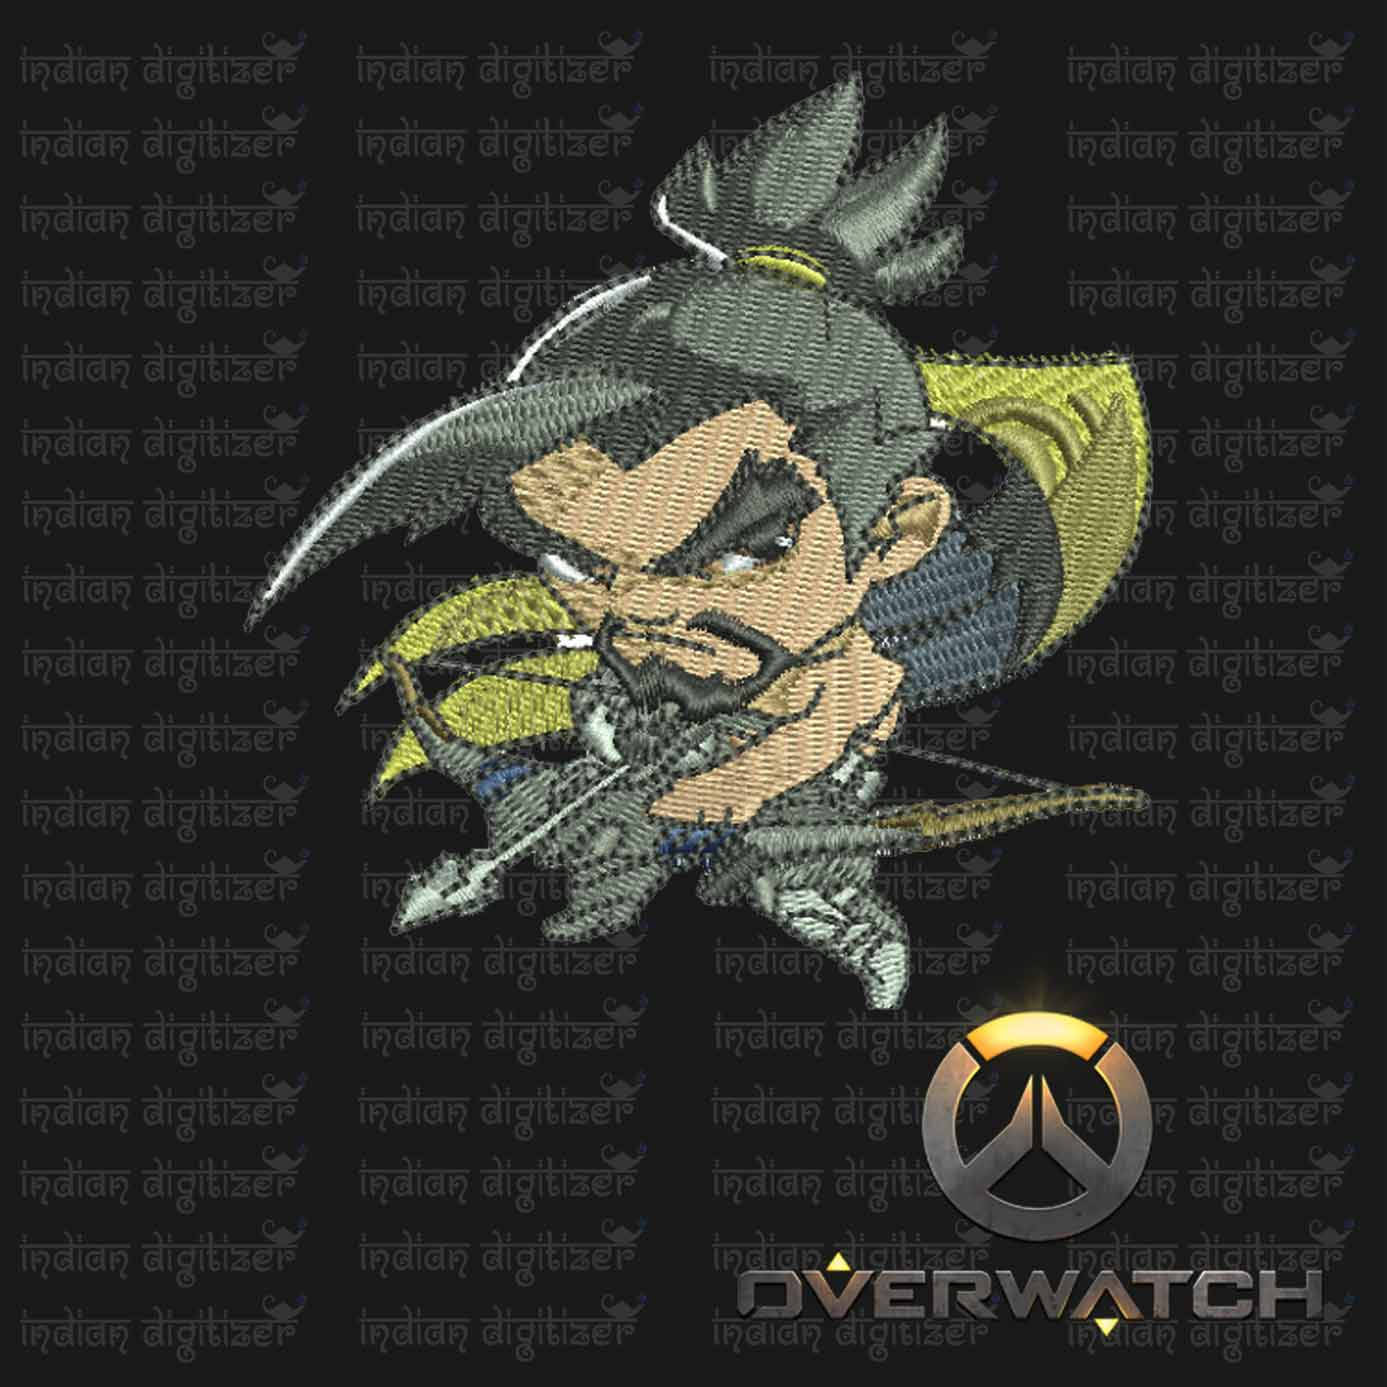 Overwatch Embroidery Designs - Hanzo individual character for 4x4in hoop - resizable with freely downloadable software.